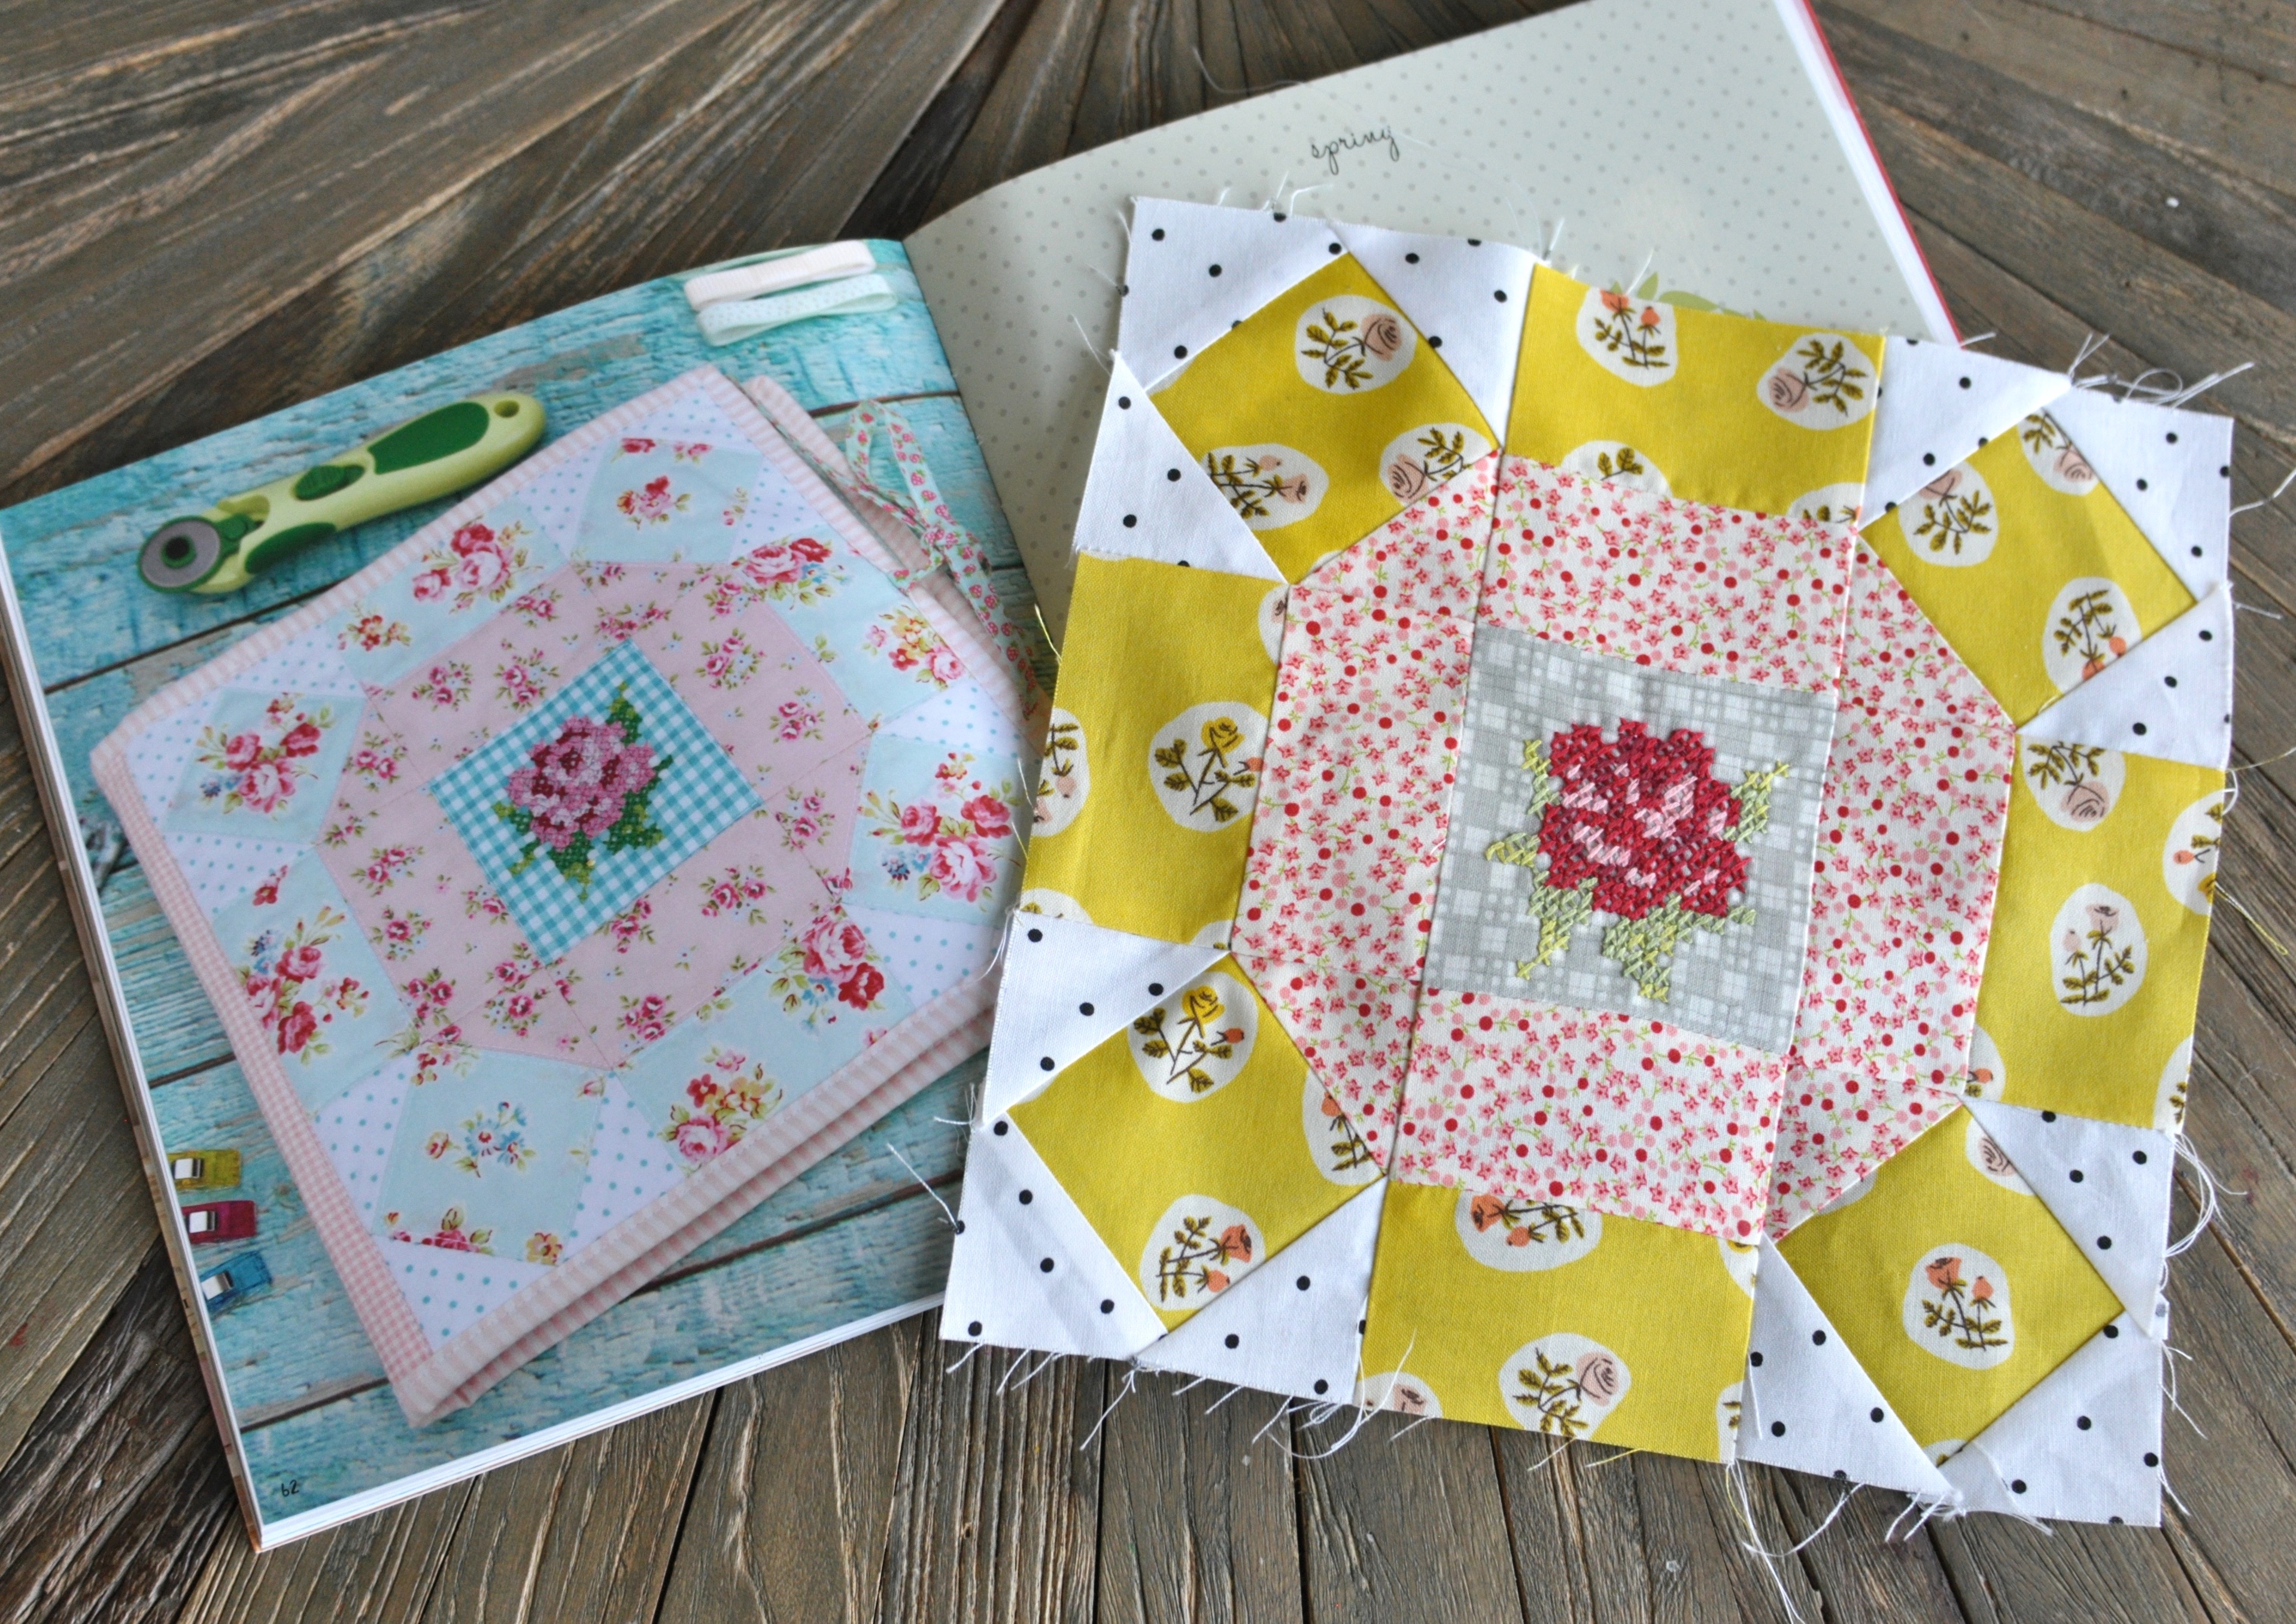 Lovely Little Patchwork : 18 Projects to Sew Through the Seasons by Kerri Horsle